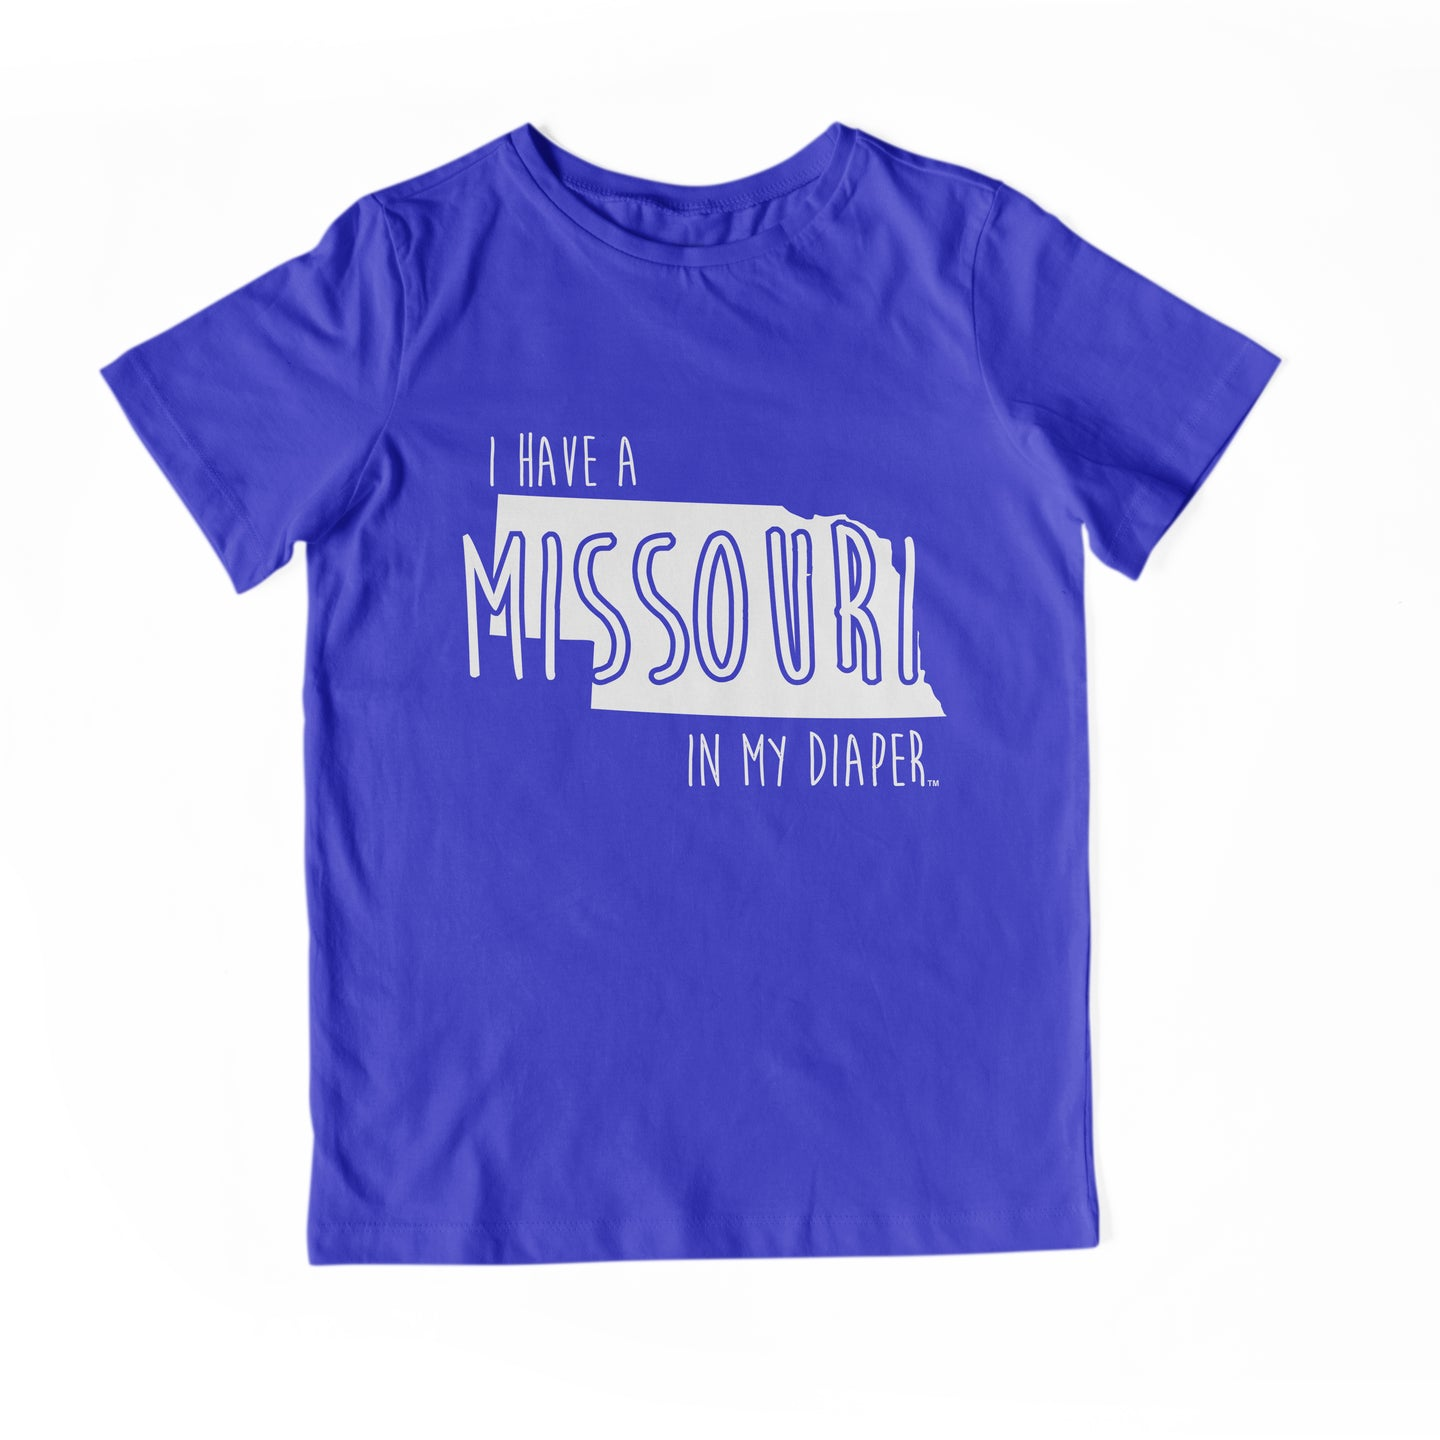 I HAVE A MISSOURI IN MY DIAPER Child Tee